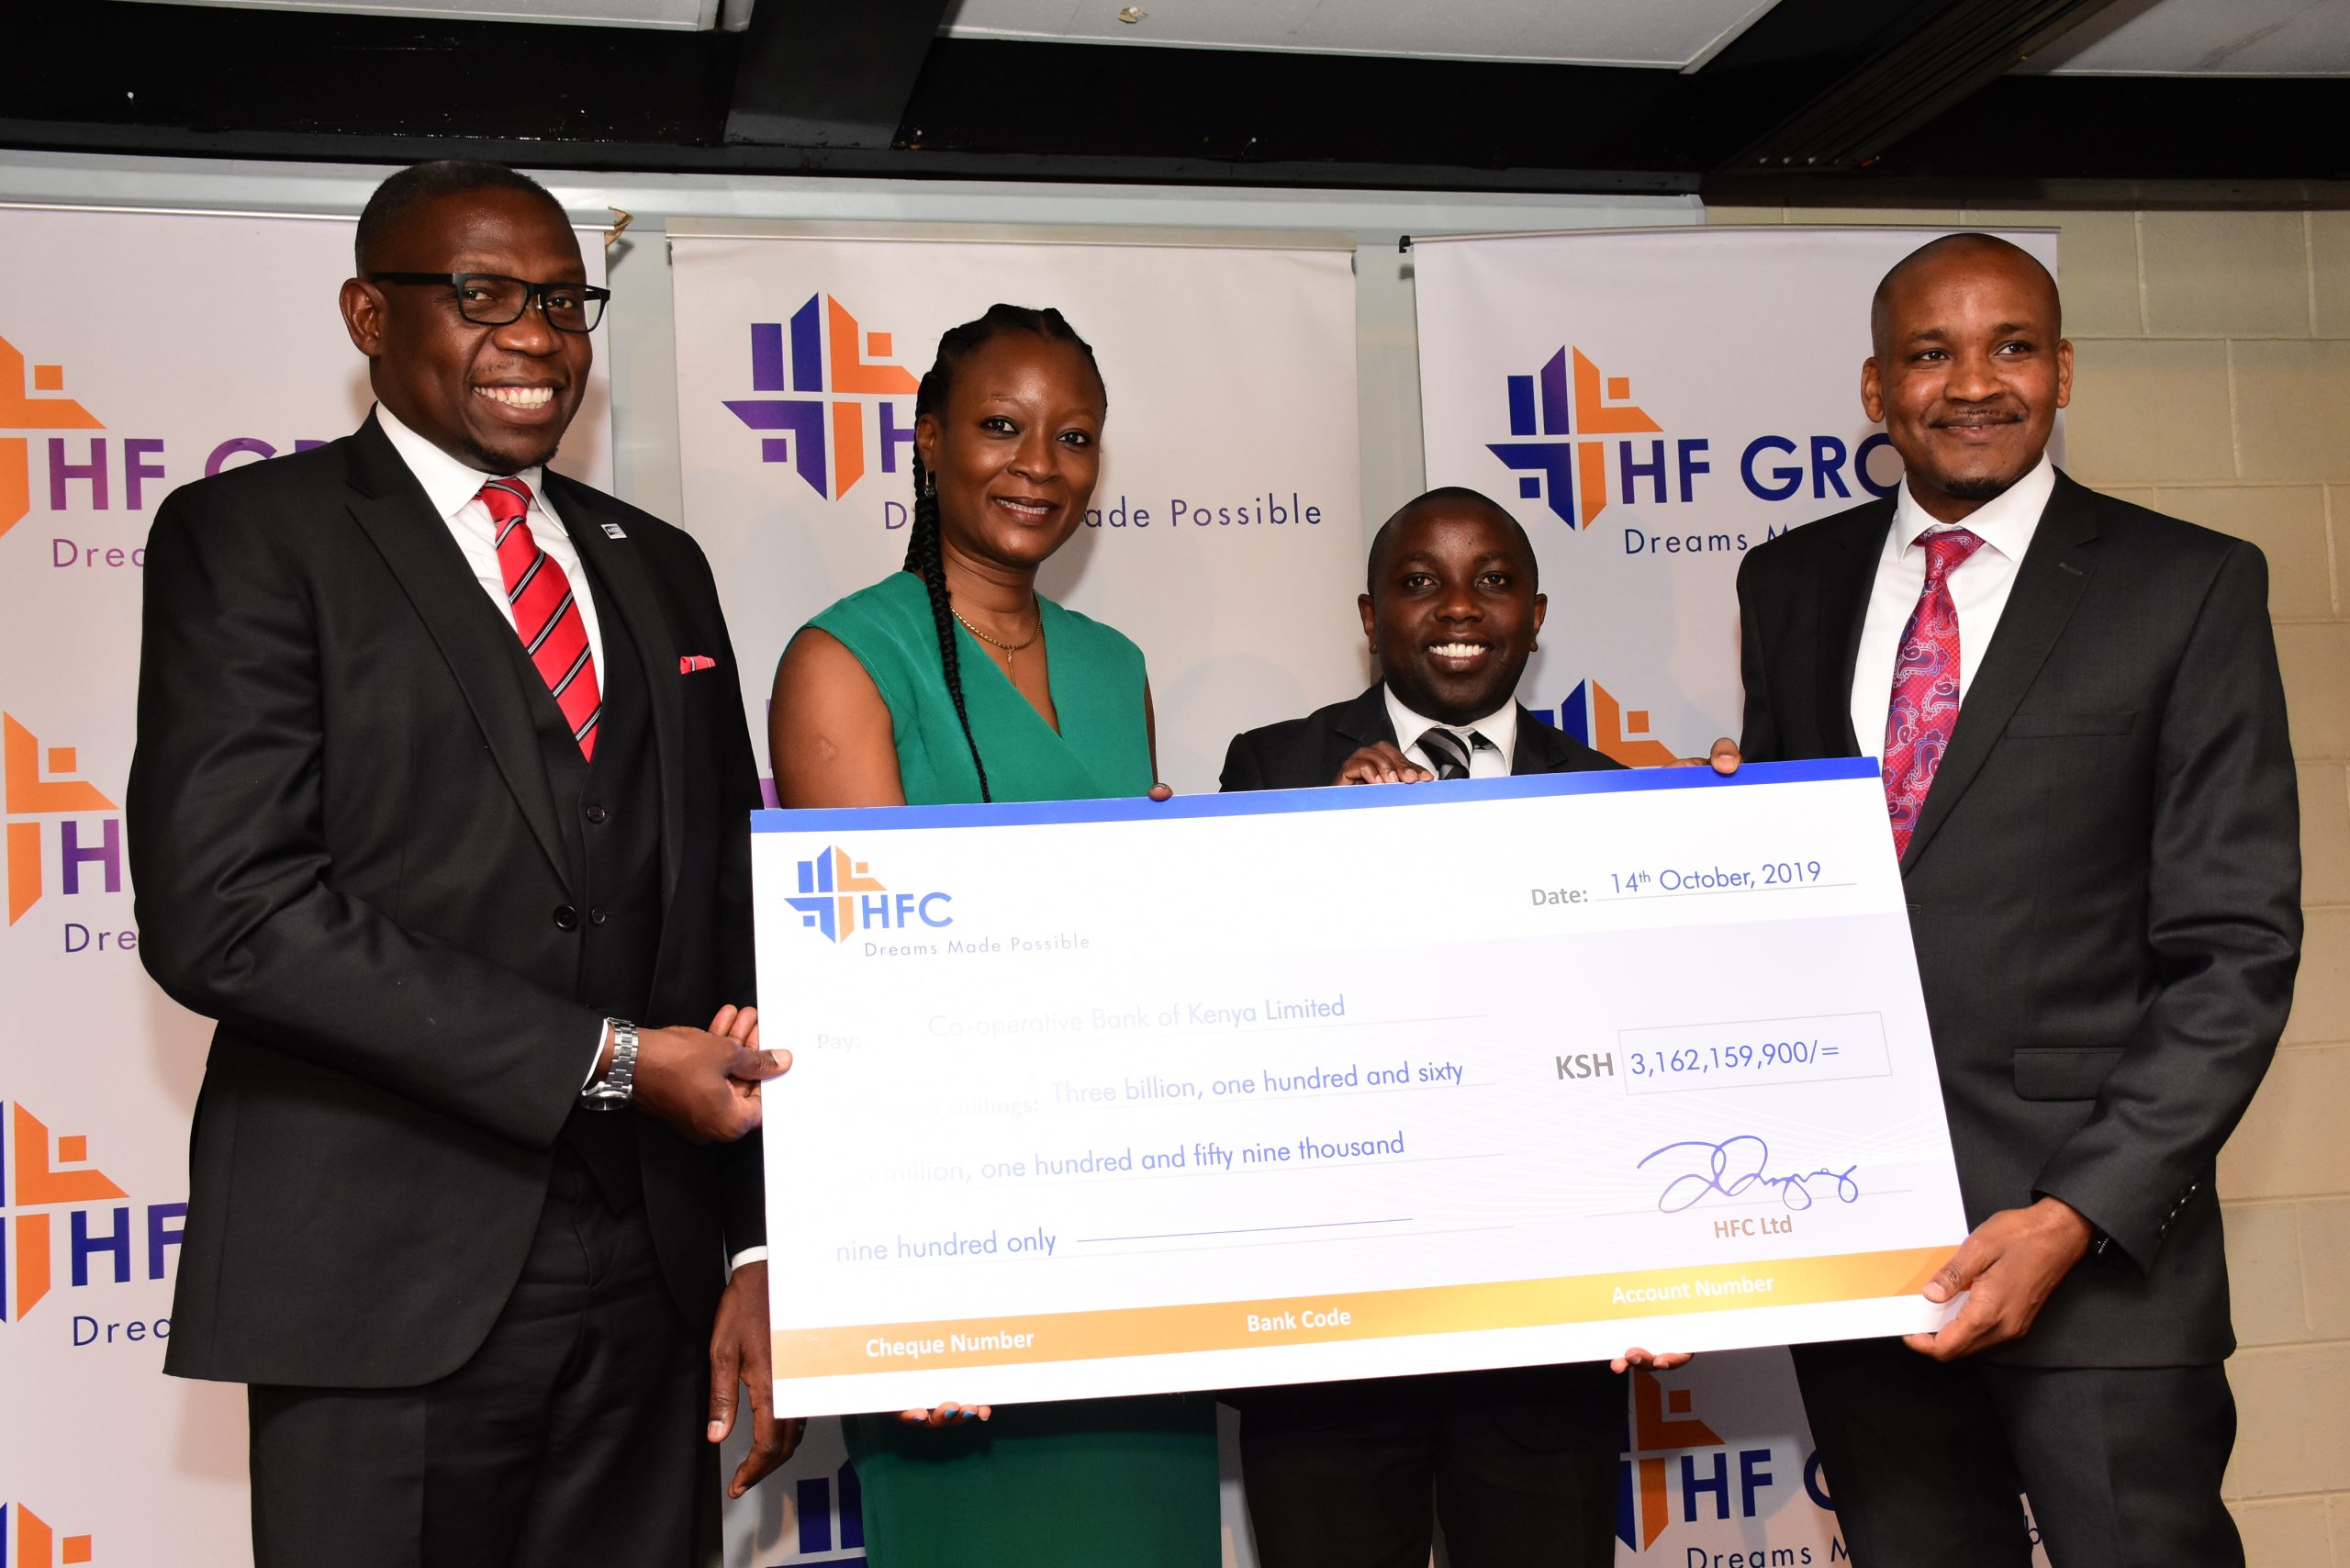 HF Group announced the full redemption of Tranche II of the Ksh 3 billion corporate bond under the Medium Term Note. www.businesstoday.co.ke